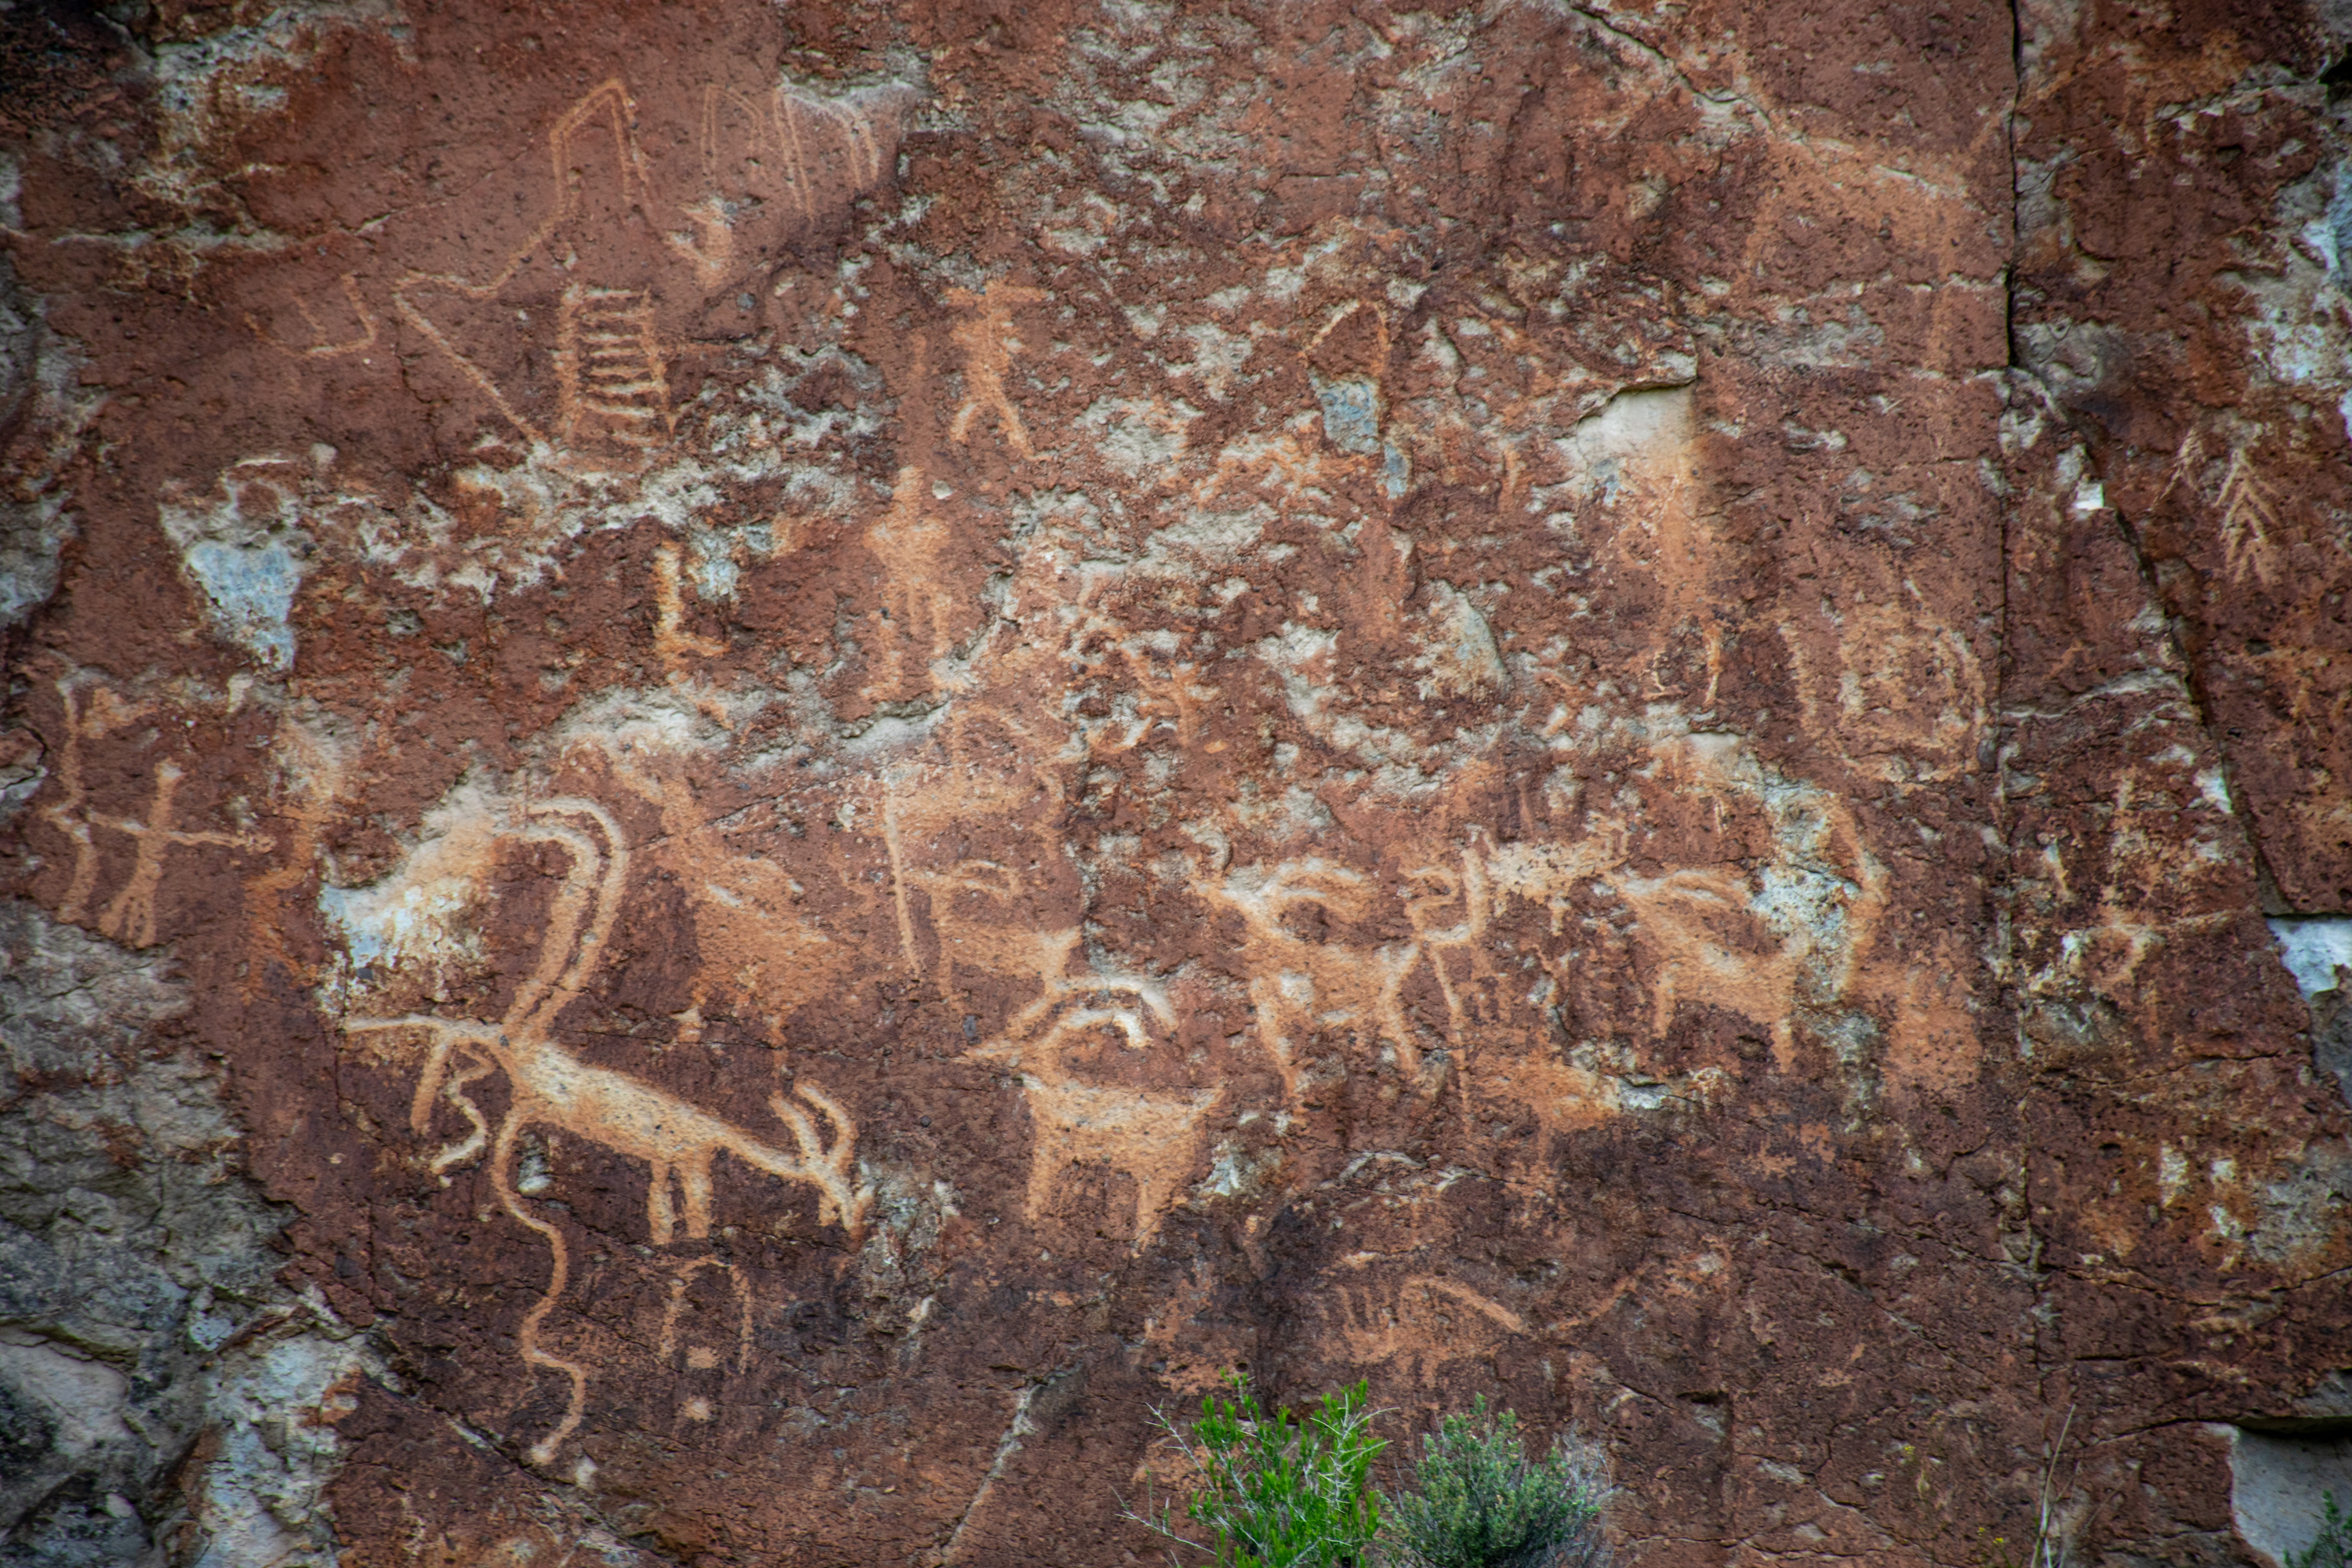 A herd of antelope in a drawing on a rock wall